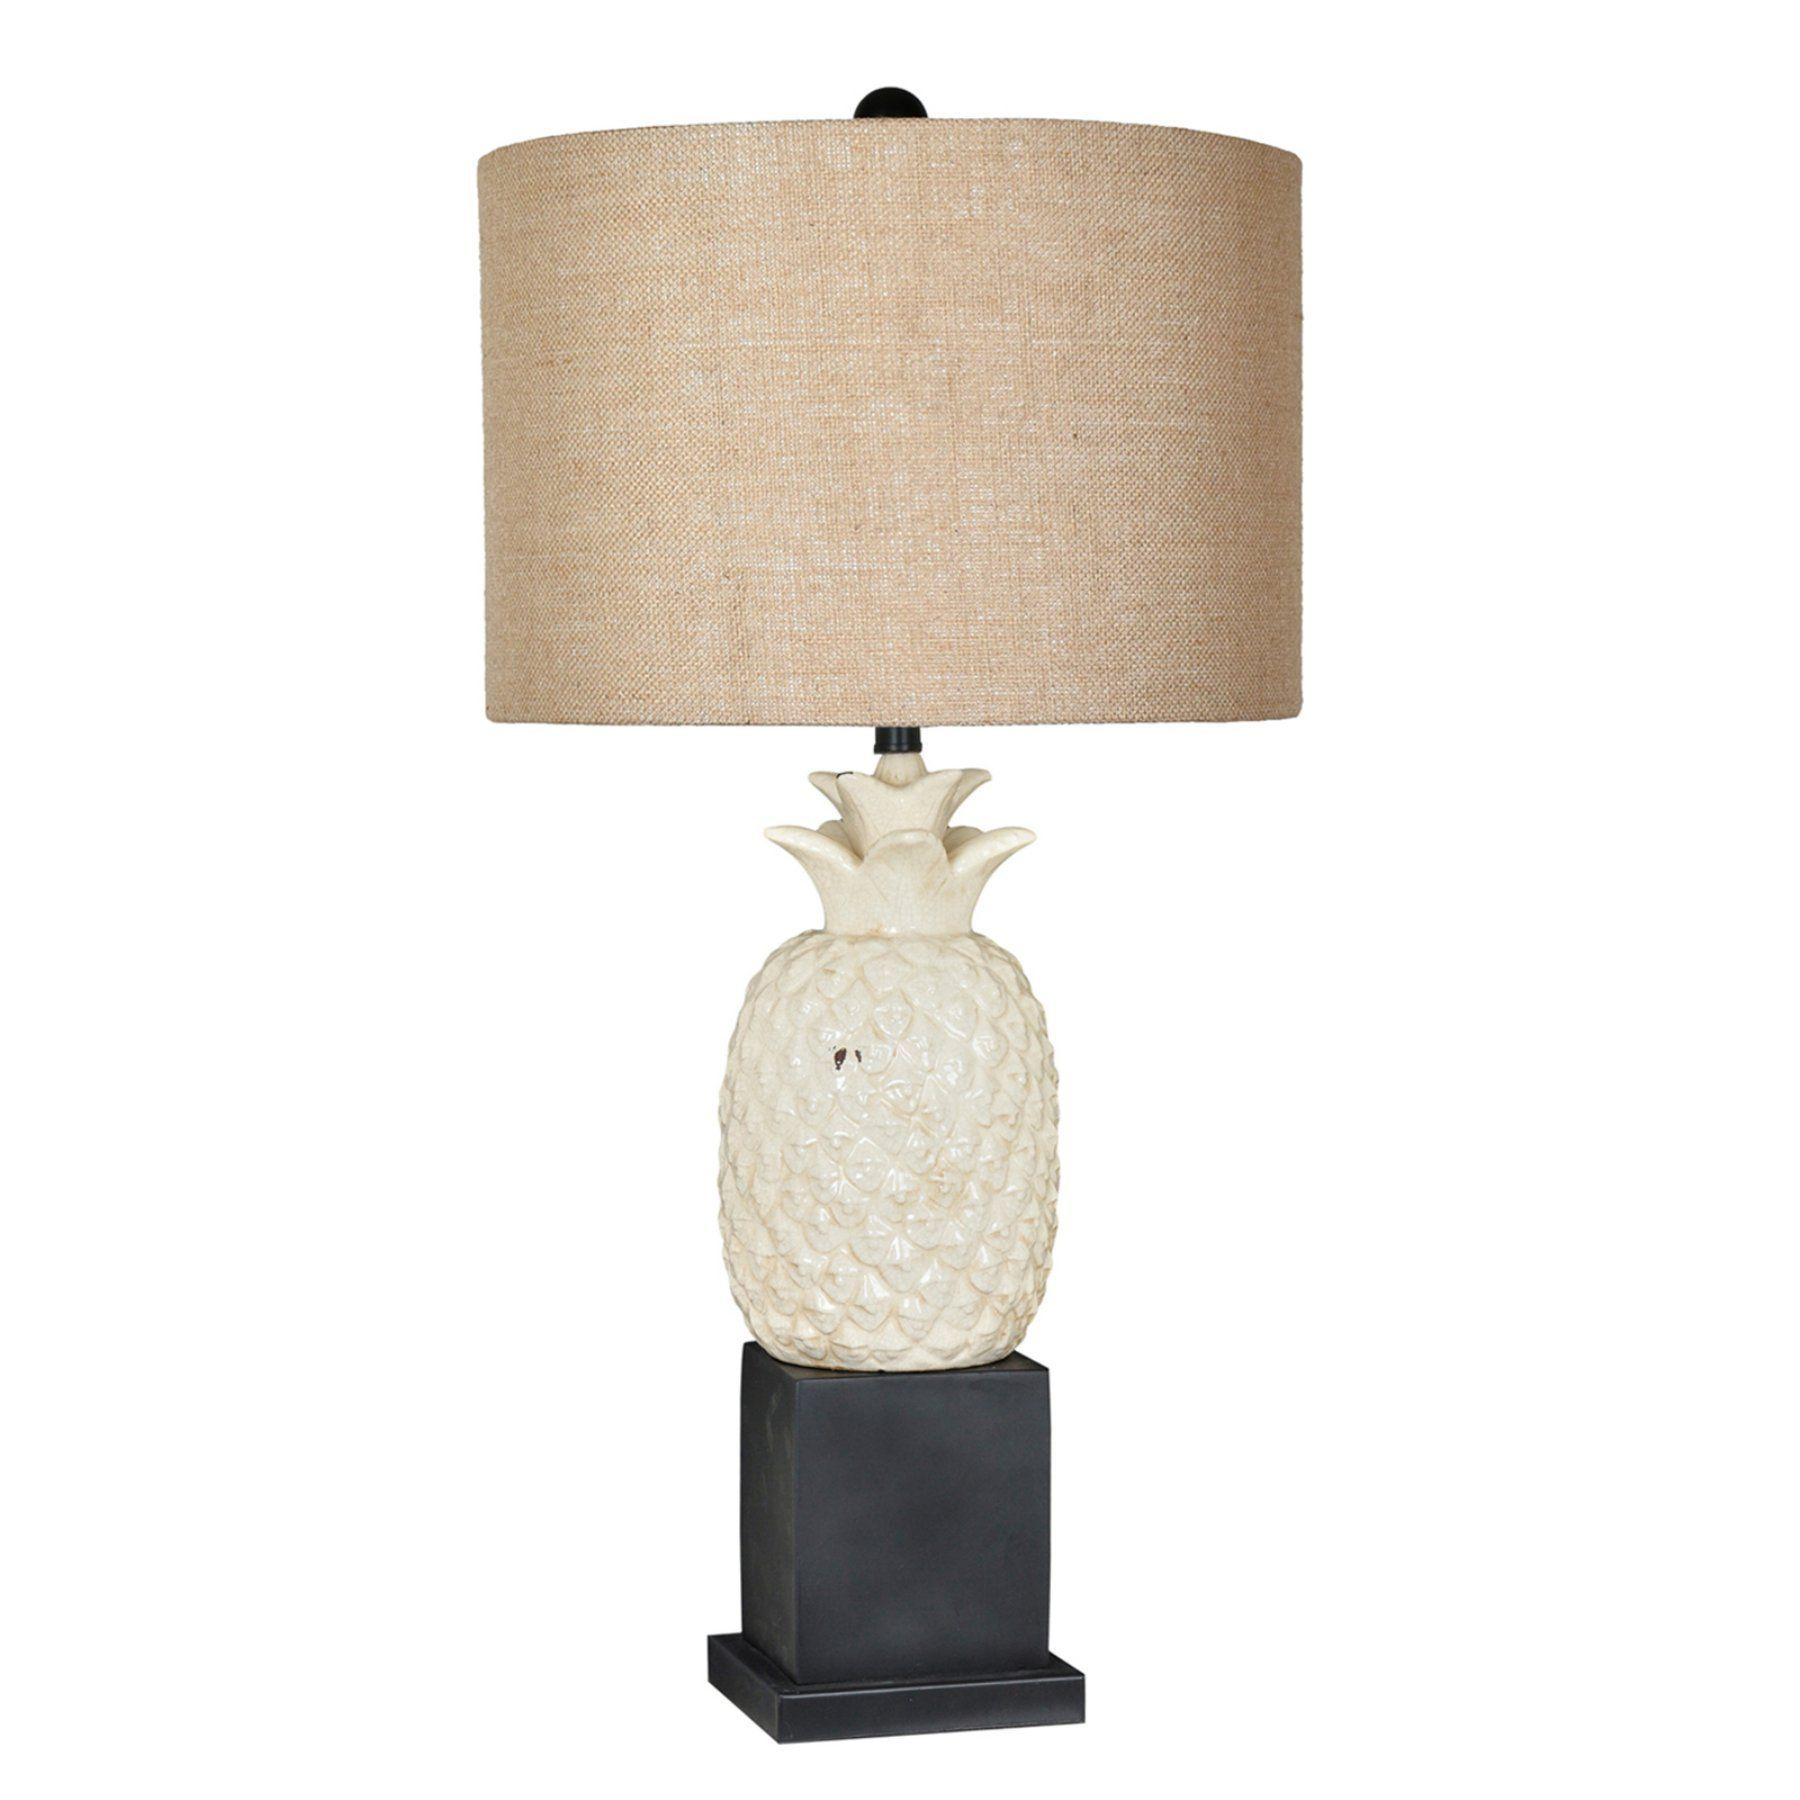 Crestview collection welcome table lamp cvap1926 welcome table crestview collection welcome table lamp cvap1926 geotapseo Gallery